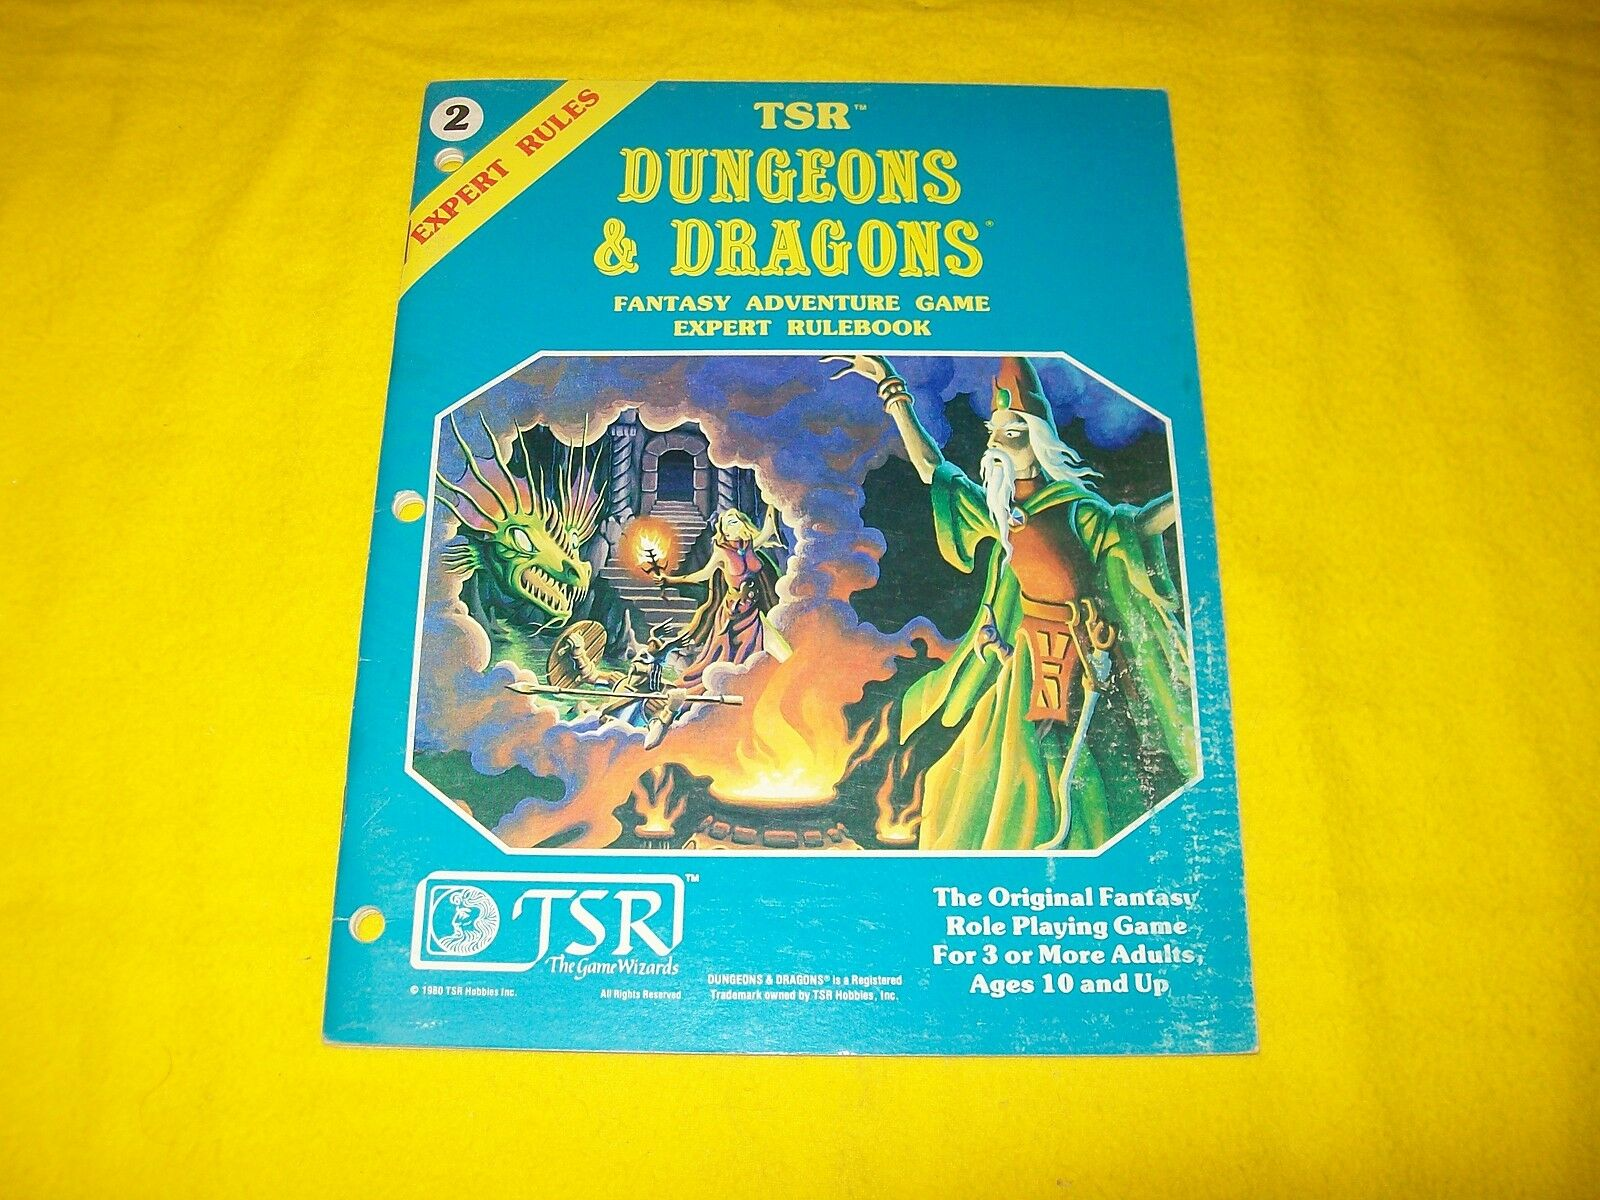 DUNGEONS & DRAGONS EXPERT RULEBOOK RULES - 2 FANTASY ADVENTURE GAME